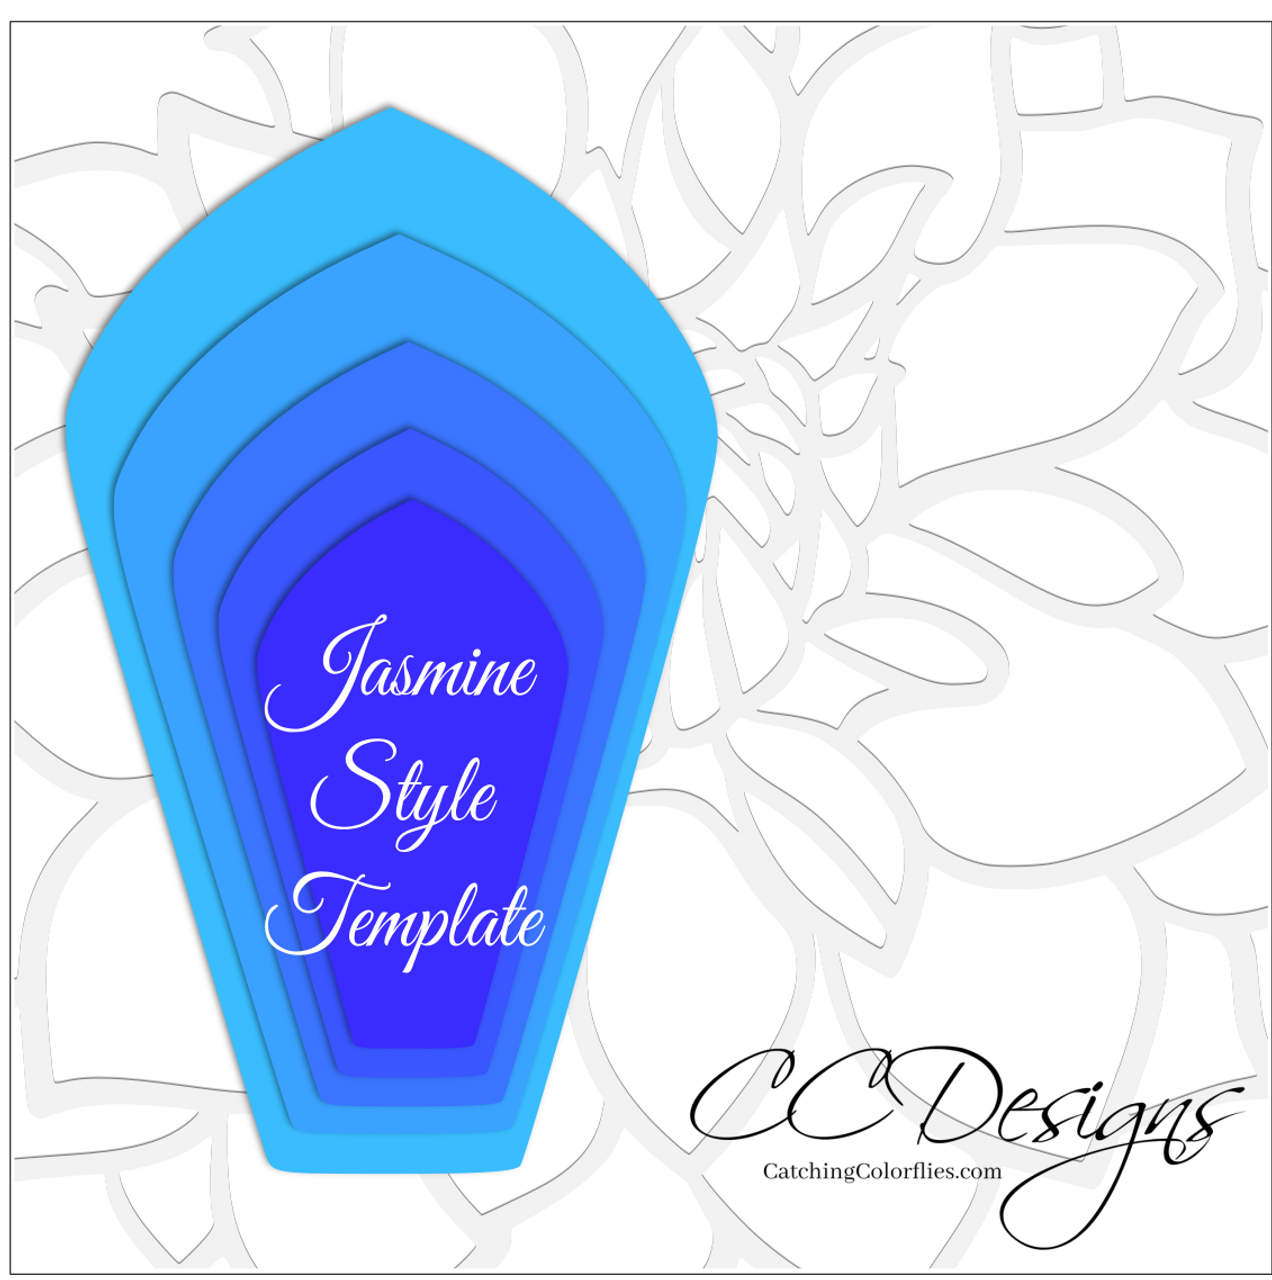 Set of 4 giant flower templates catching colorflies for Jasmine star email templates